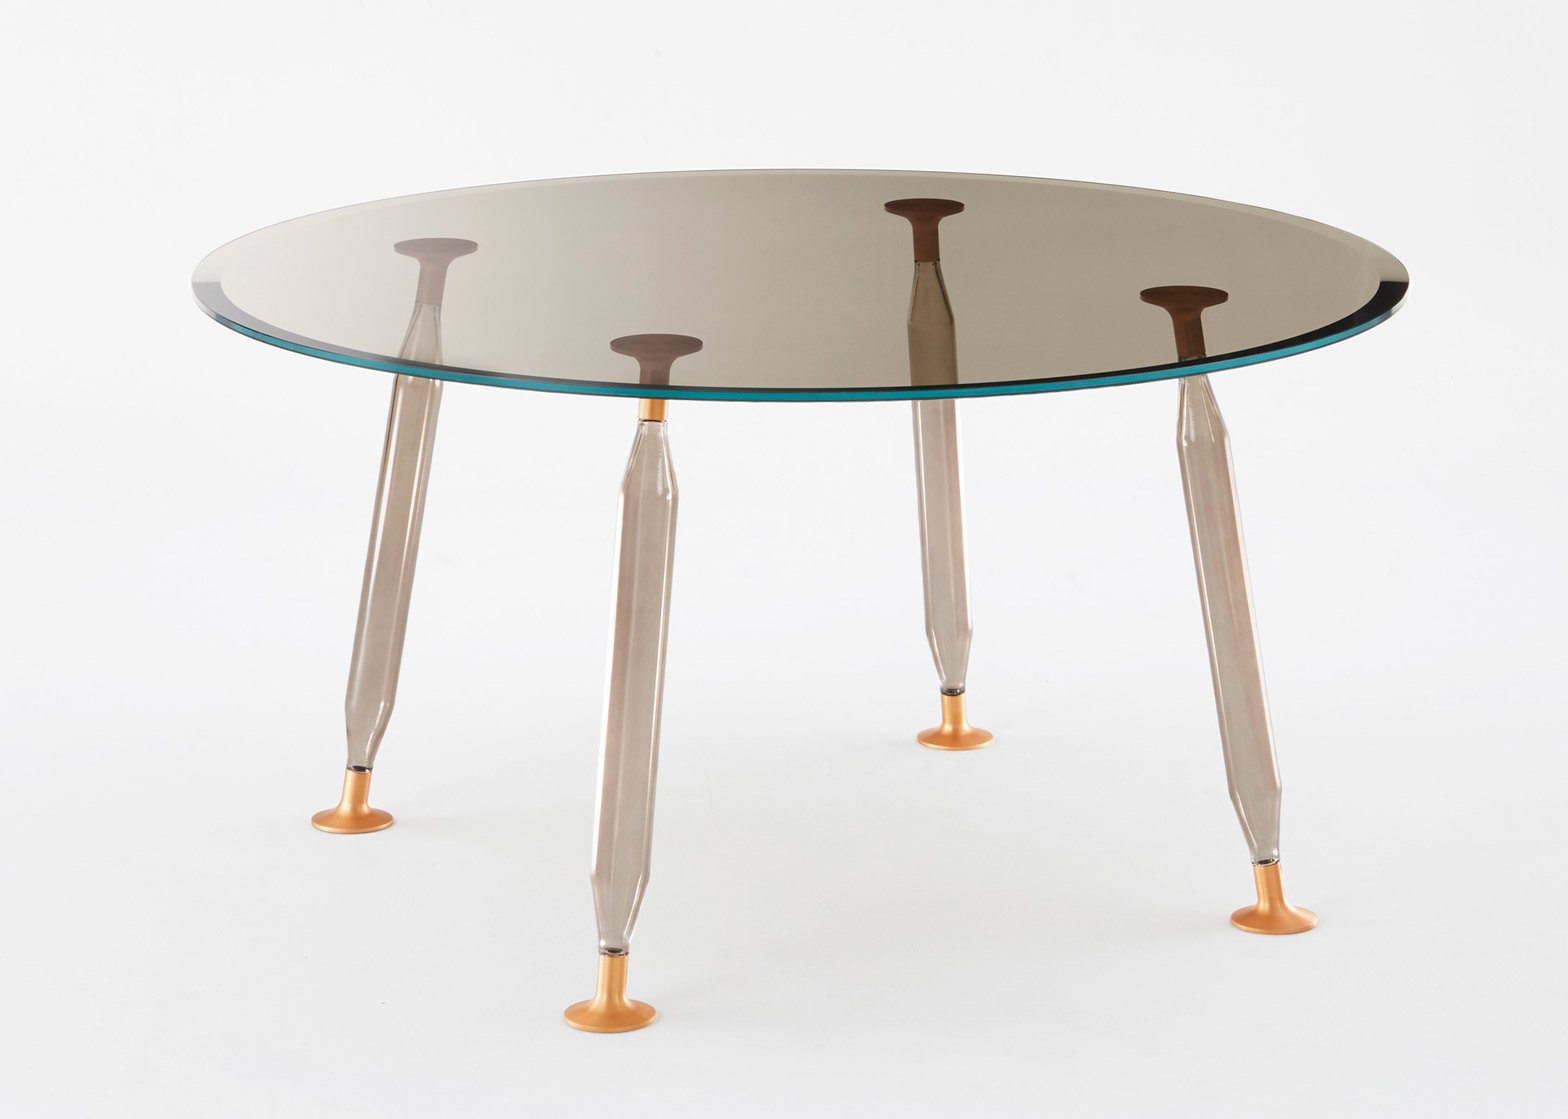 Lady Hio by Philippe Starck and Salvatore Schito